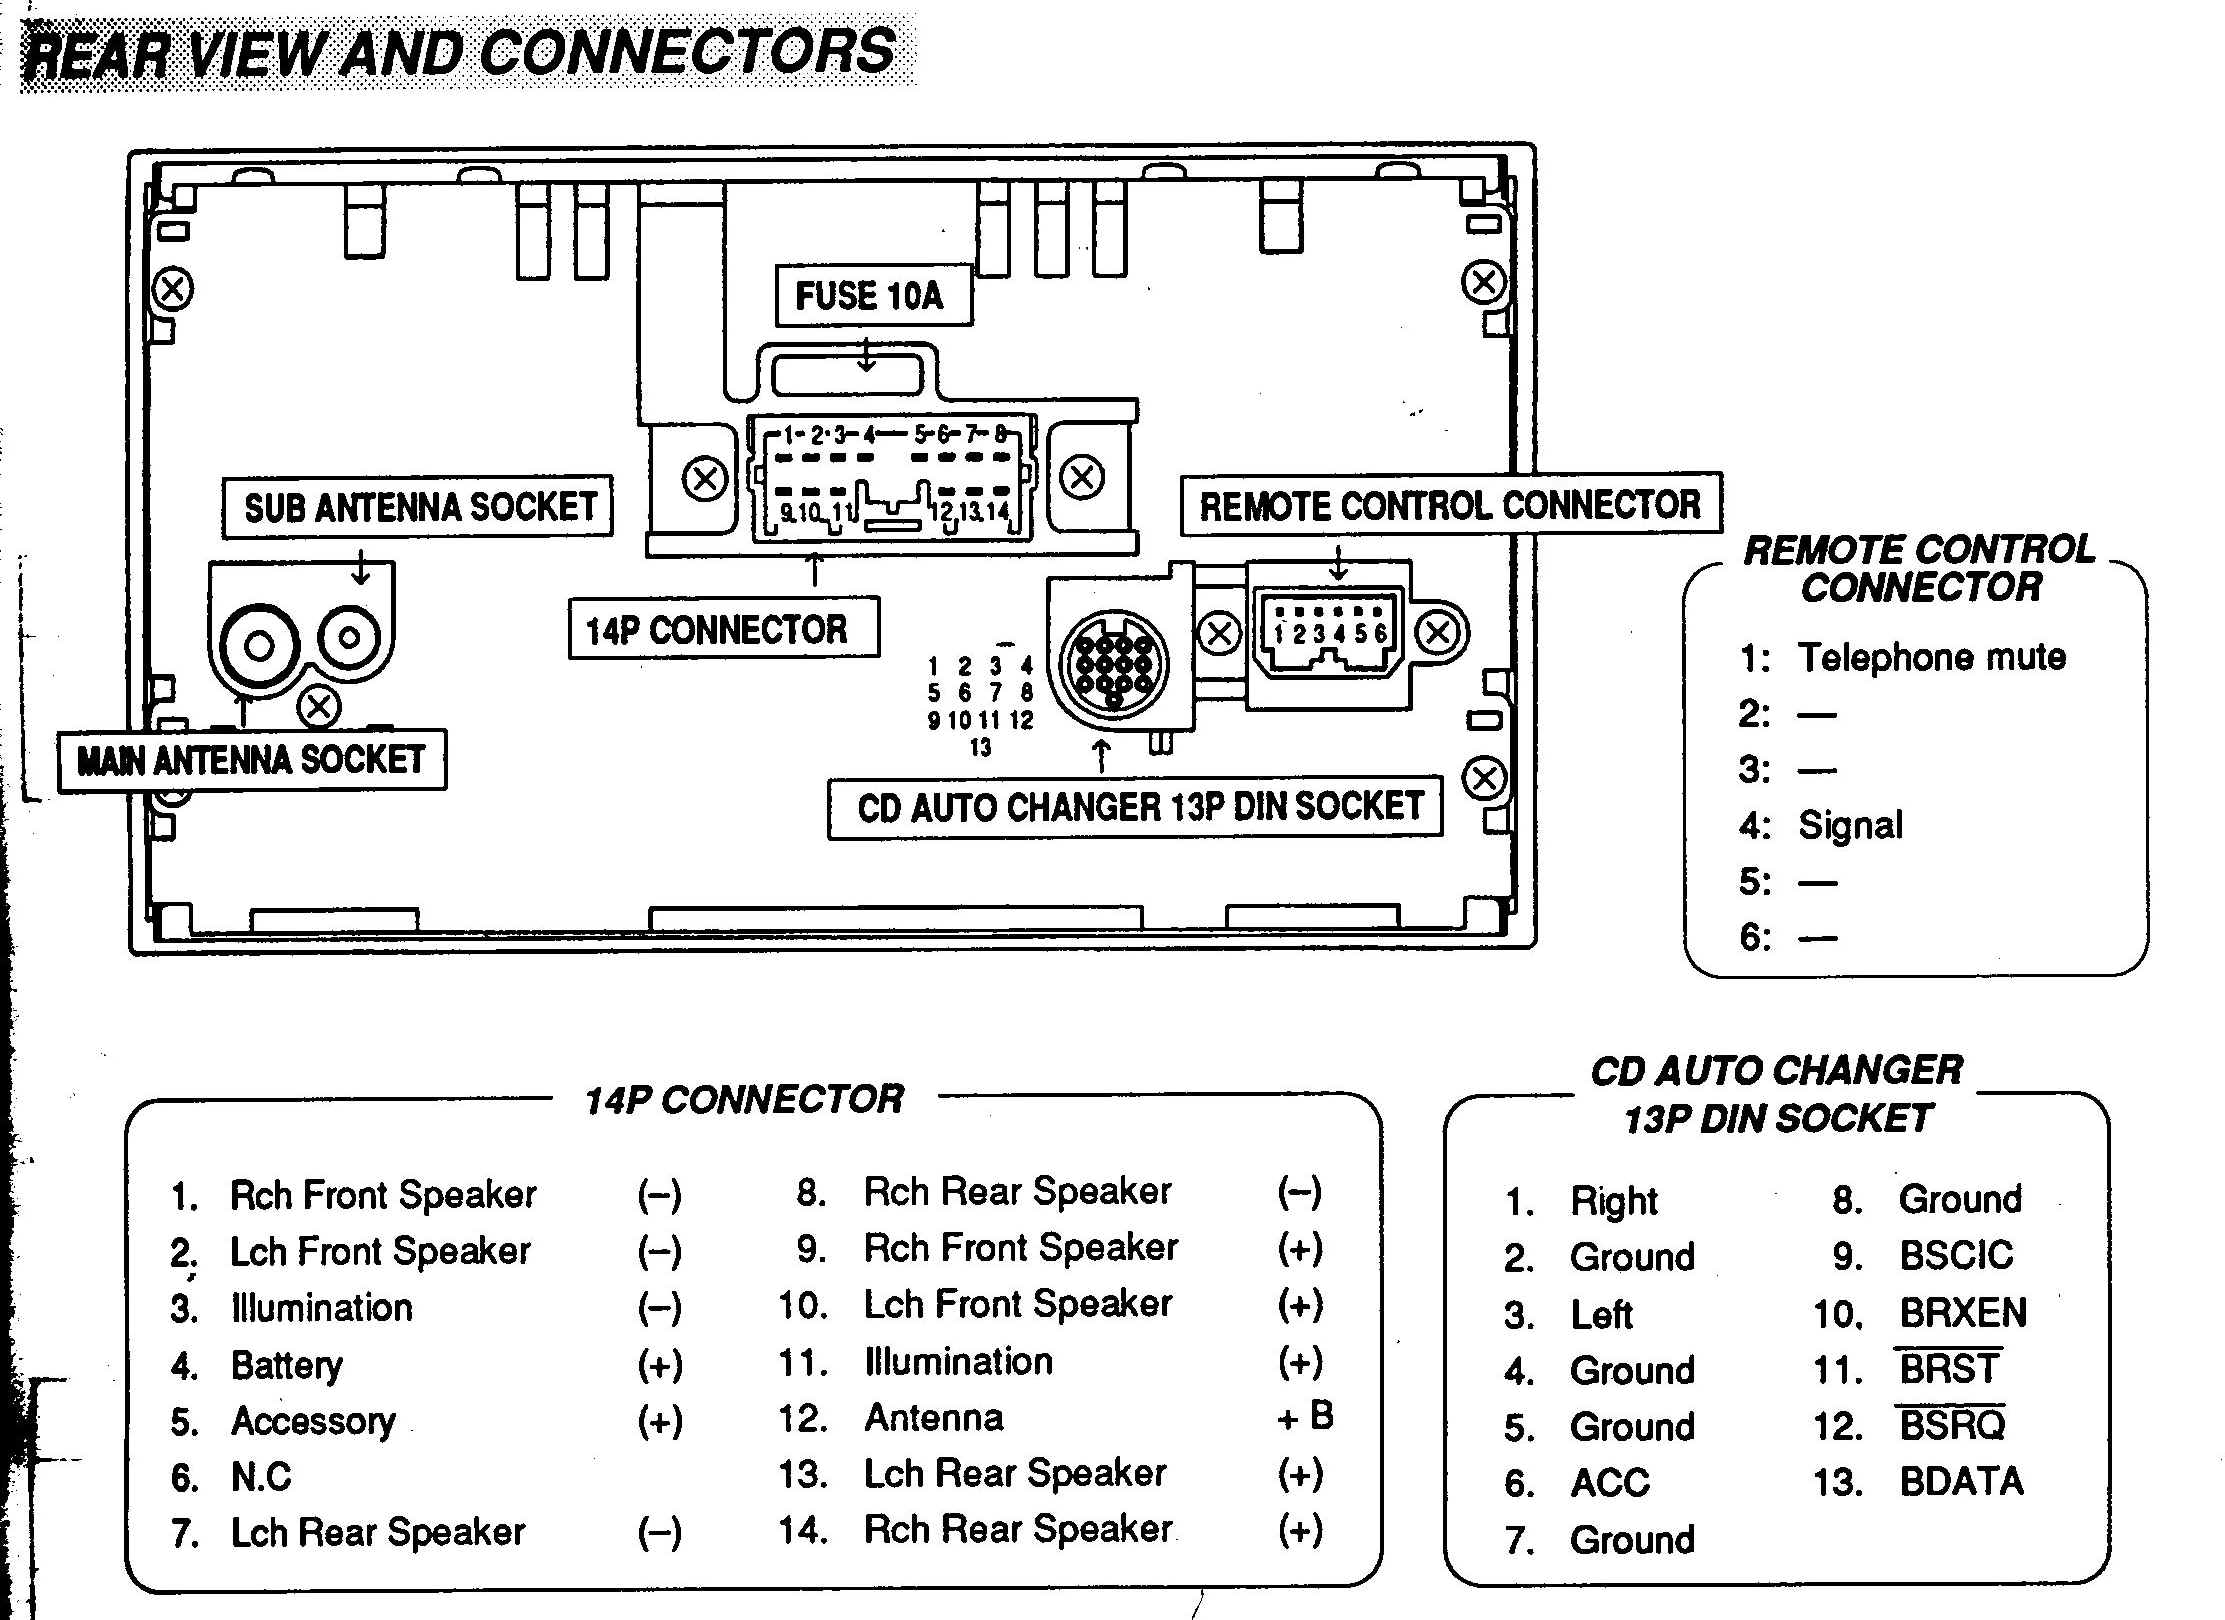 car stereo wiring diagram mitsubishi wiring diagrams and schematics car stereo and security wiring diagrams